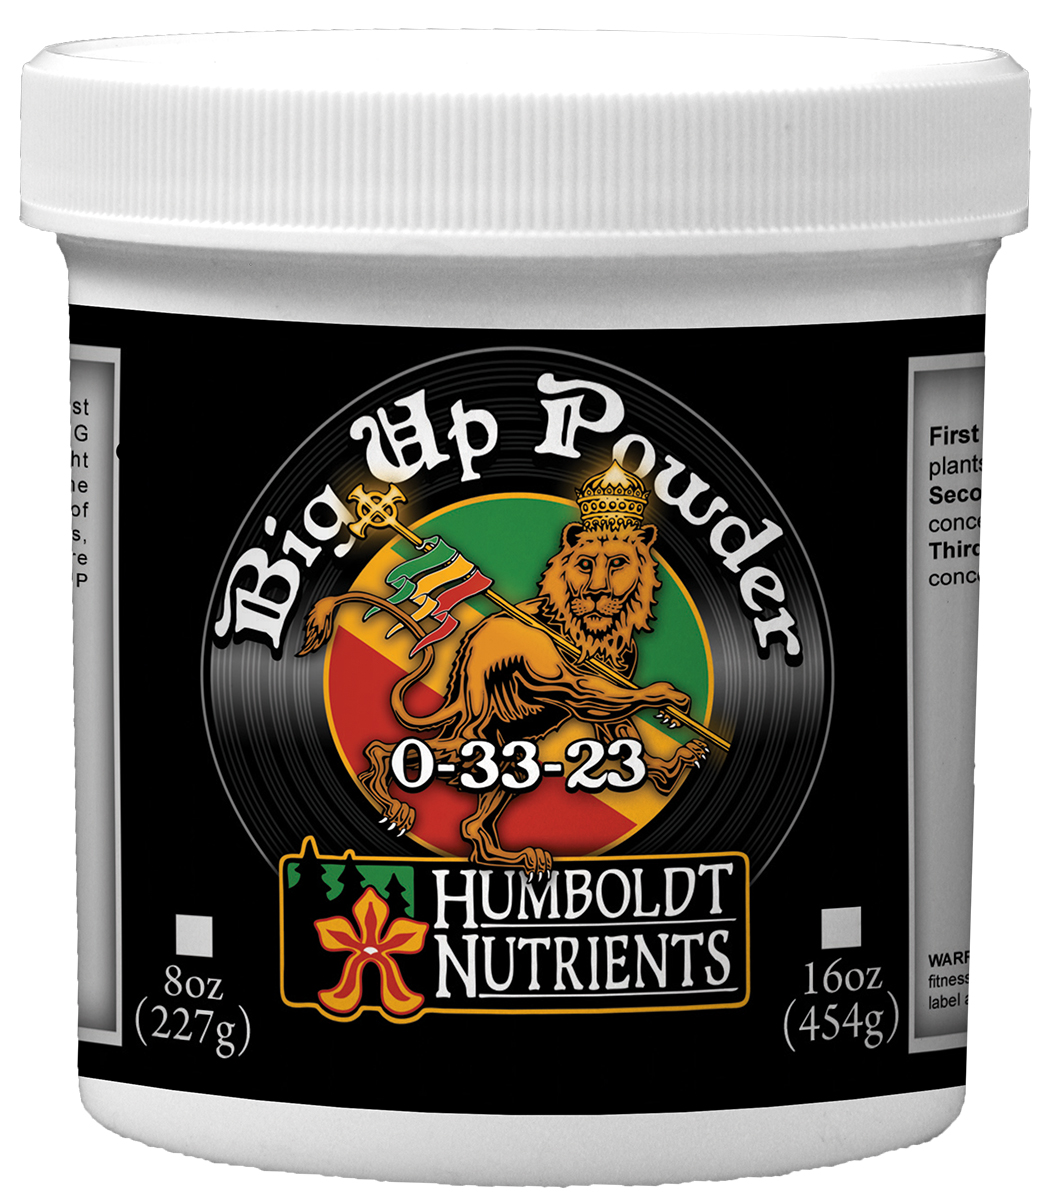 Humboldt Nutrients Big Up Powder, 8oz